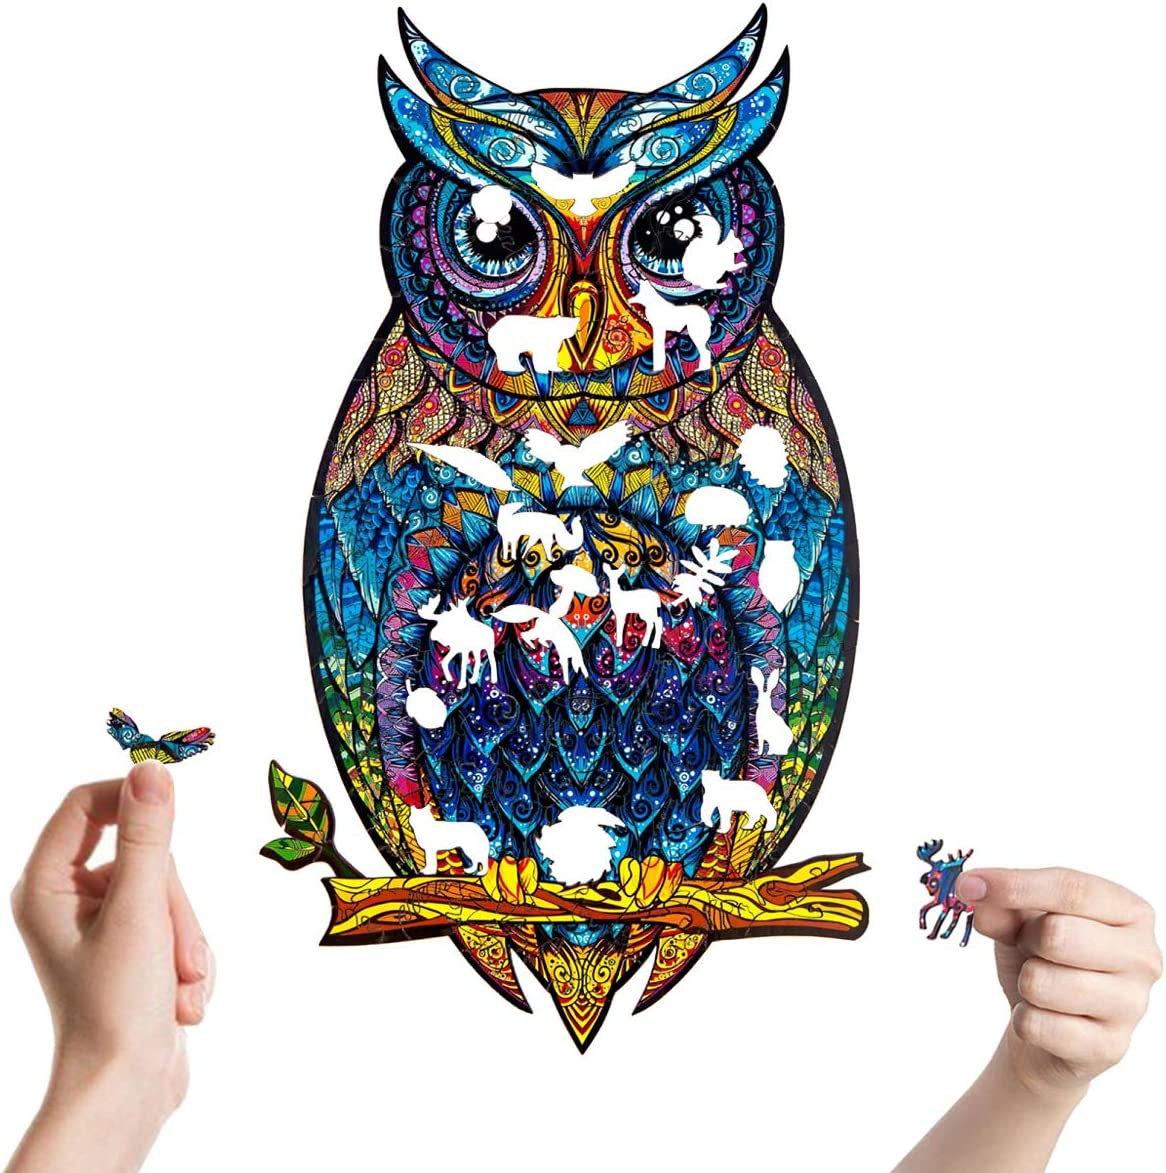 Owl Pieces Puzzles Wall Decals, Colorful Owl Animals Wall Sticker Peel and Stick for Kids Nursery Room, Owl Home Décor Mural Vinyl Removable for Baby Boys & Girls Bedroom